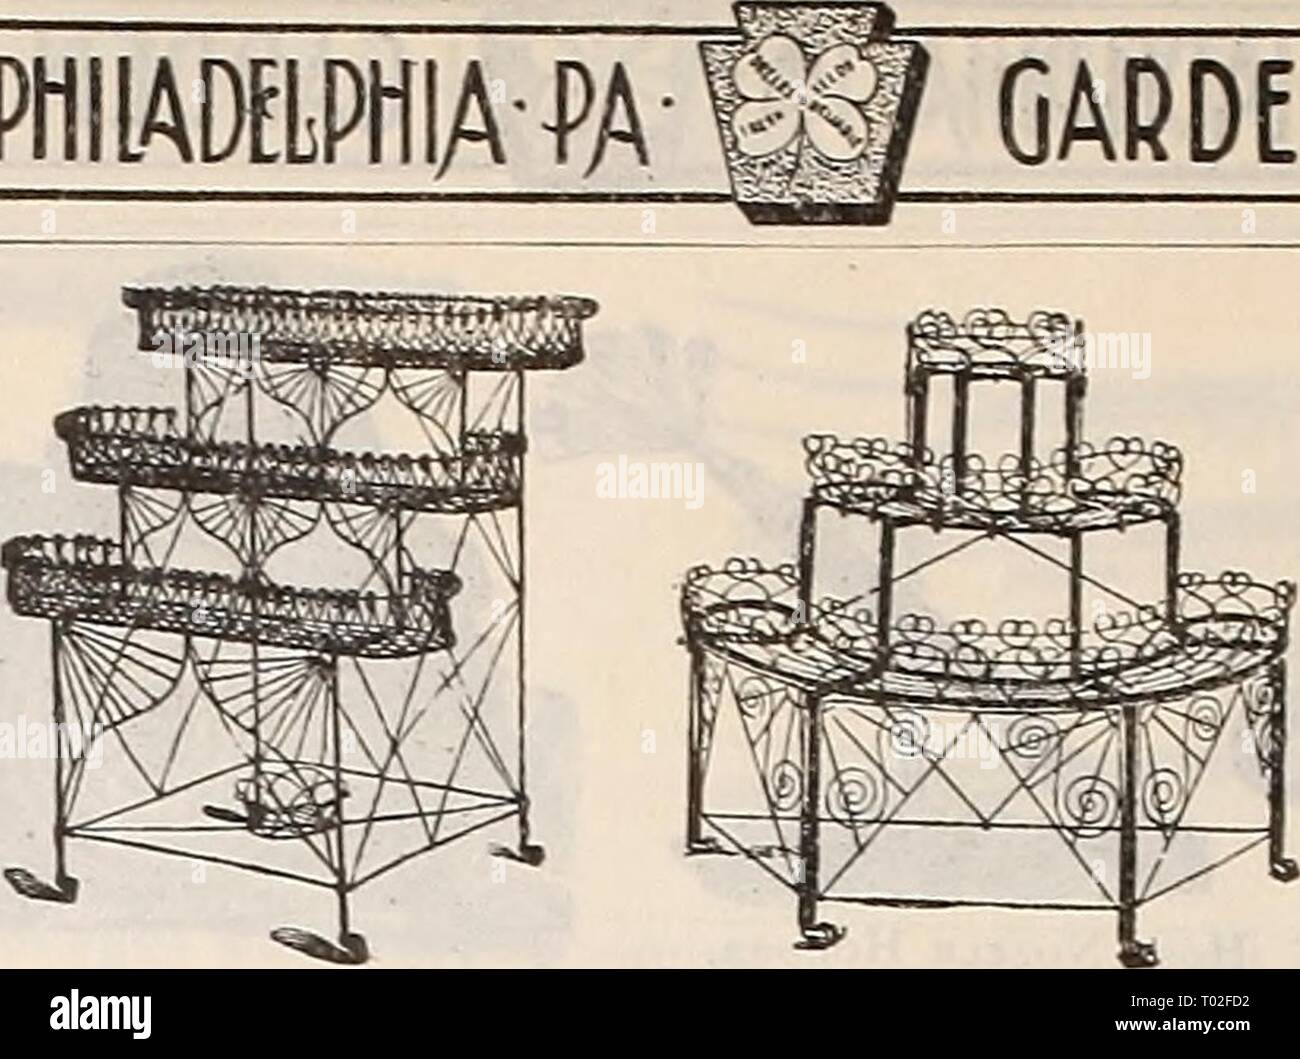 Dreer's garden calendar : 1900 . dreersgardencale1900henr Year: 1900  180 |1lENRrADREER-PHIlADELPH^^â W    OARDEIi REQUISITES- WiKE Plant Stands Knives. Pruning, American, 50 cts.. 75 els. and $1 00 â ⢠St.ig ' Imported, No. 1, very heavy 125 ' ' ' 2, meJ. lieavy. ... 1 15 ' ' ' ' ' 3, light 100 'Cocoa' ' ' 4: heavy 90 '⢠Stag '2blades' ' 5, medium 100 ' Horn. Budding'' ' 6, Dreer's Special. 75 'Ivory, â¢' ' ' 7 and No. 8 100 'Cocoa. ' ' ' 9, for garden use.. 60 * ' Corn, American, 50, Corn or Hedge, Eng. 75 'Brush, ' $1 00, English 175 'â ' Gooseberrv, Pruning 1 00 COÂ«W Ofl MtOftt *' Wood, - Stock Image